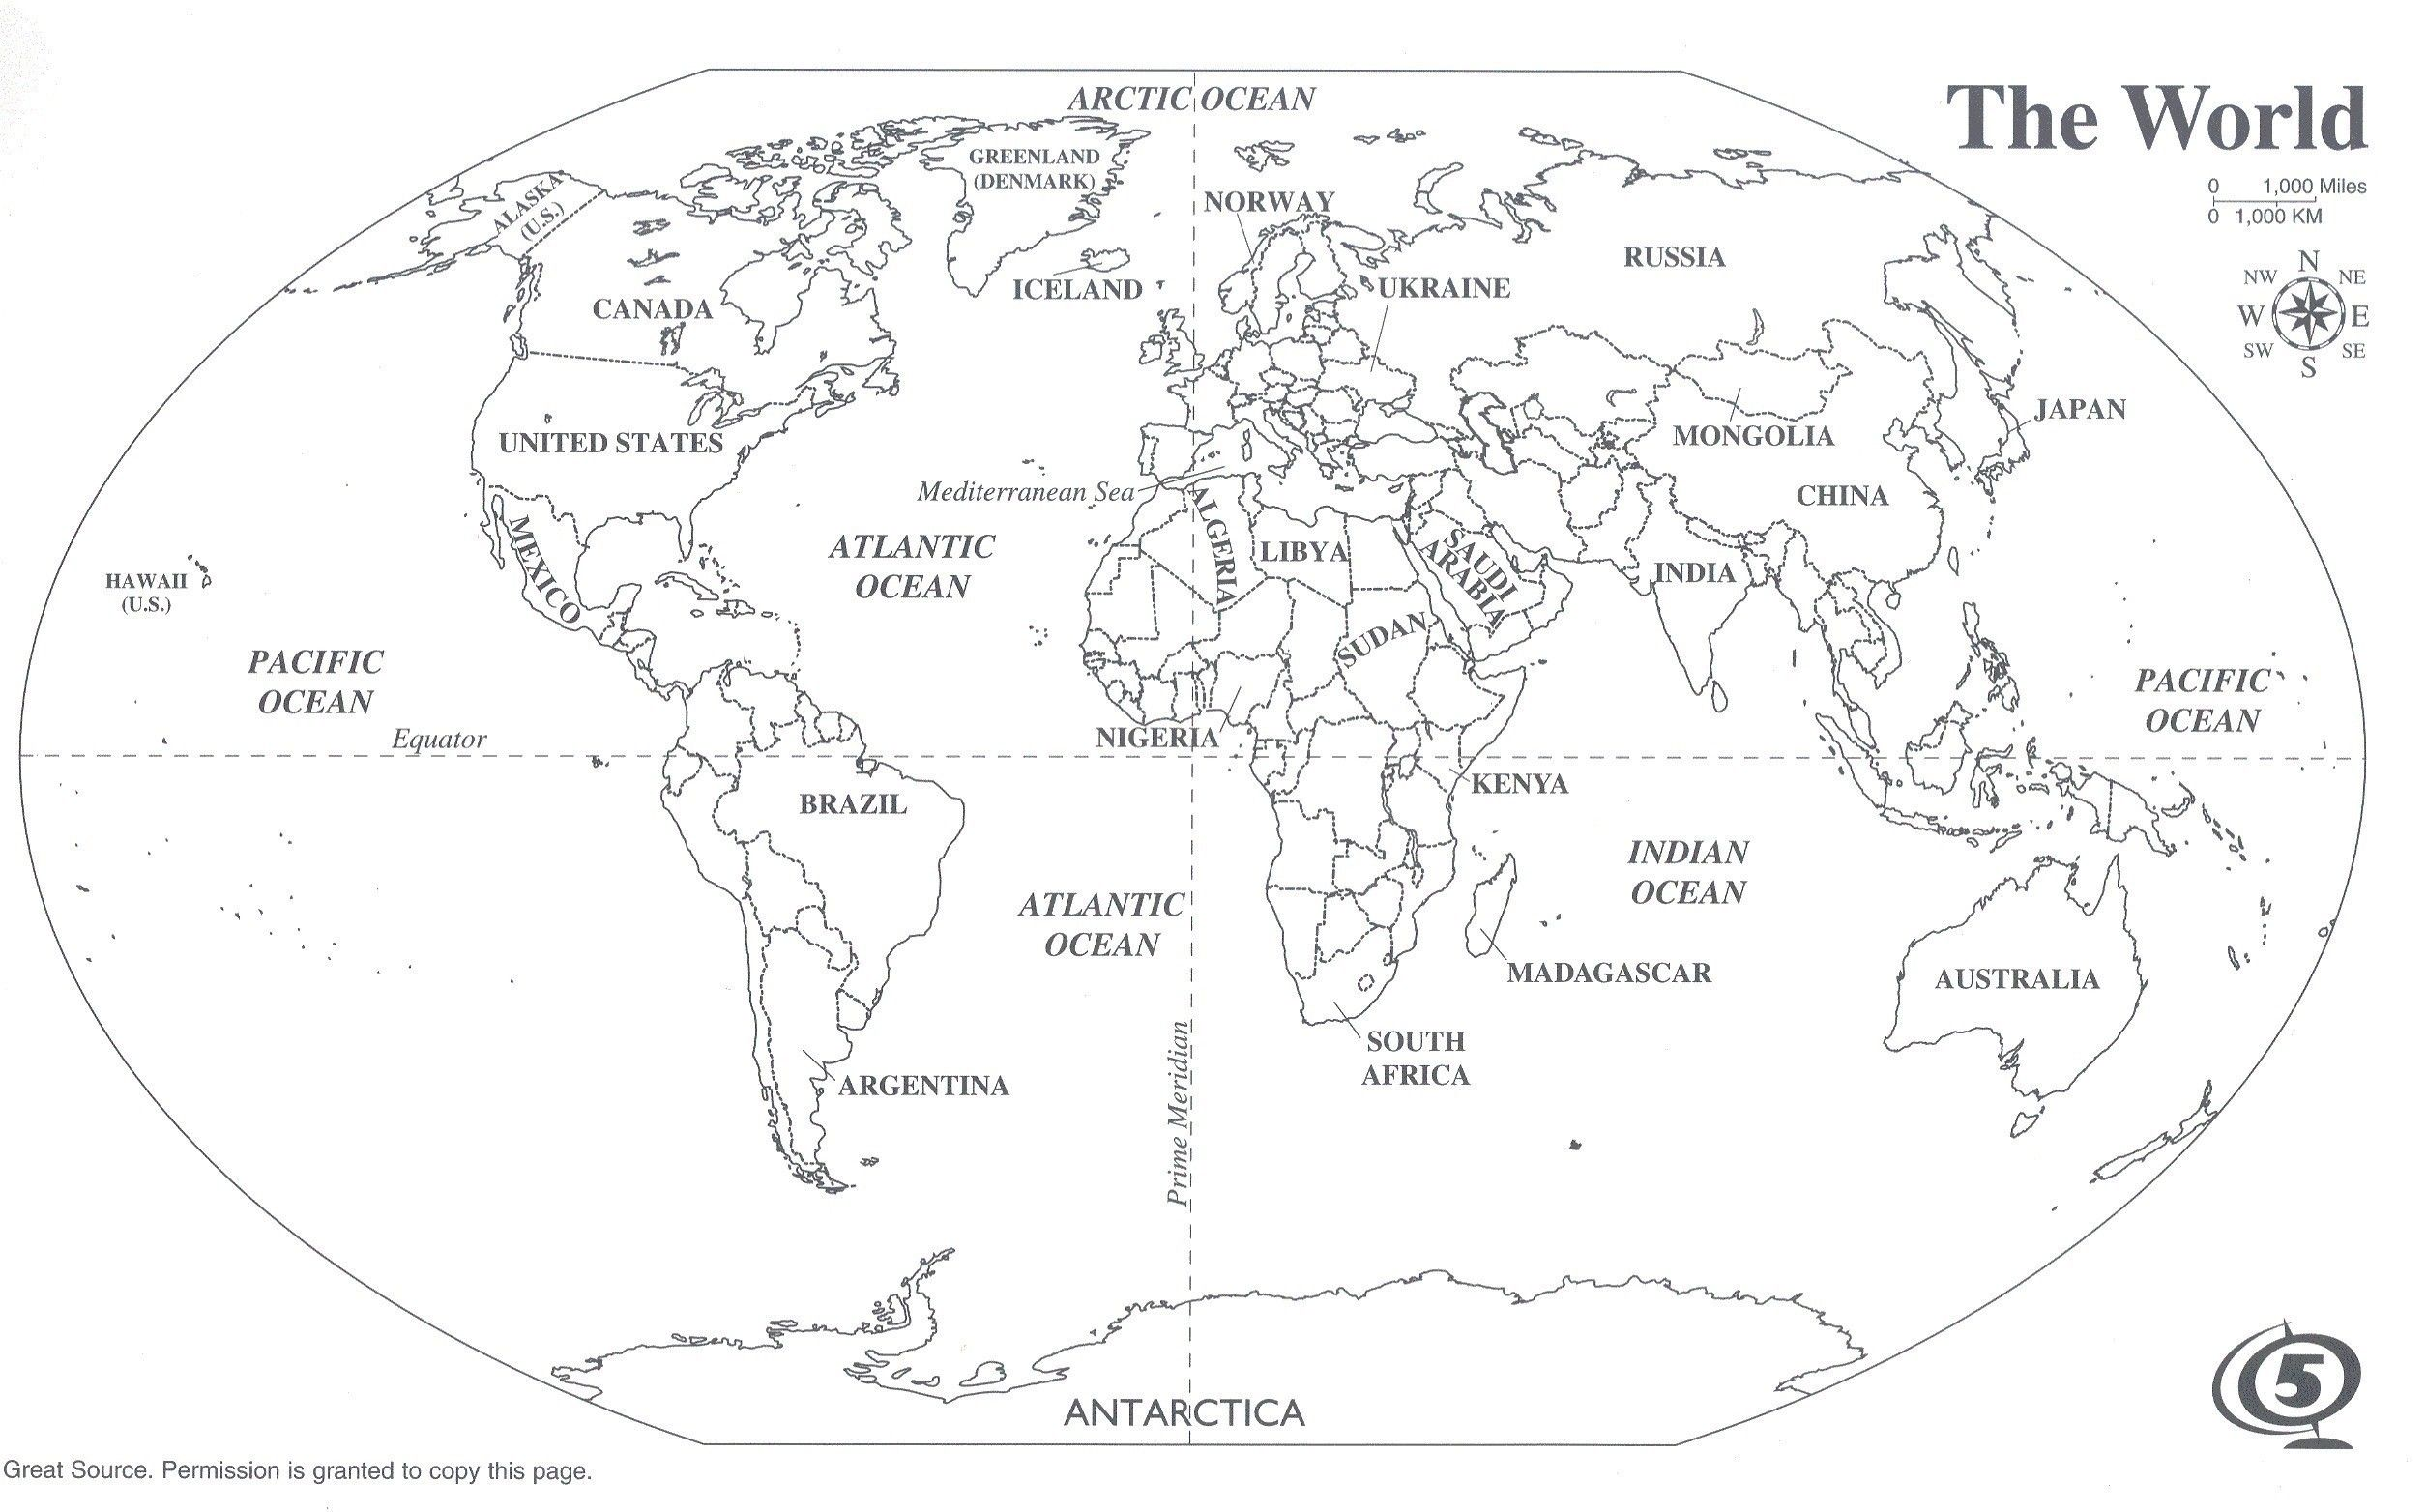 Black And White World Map With Continents Labeled Best Of